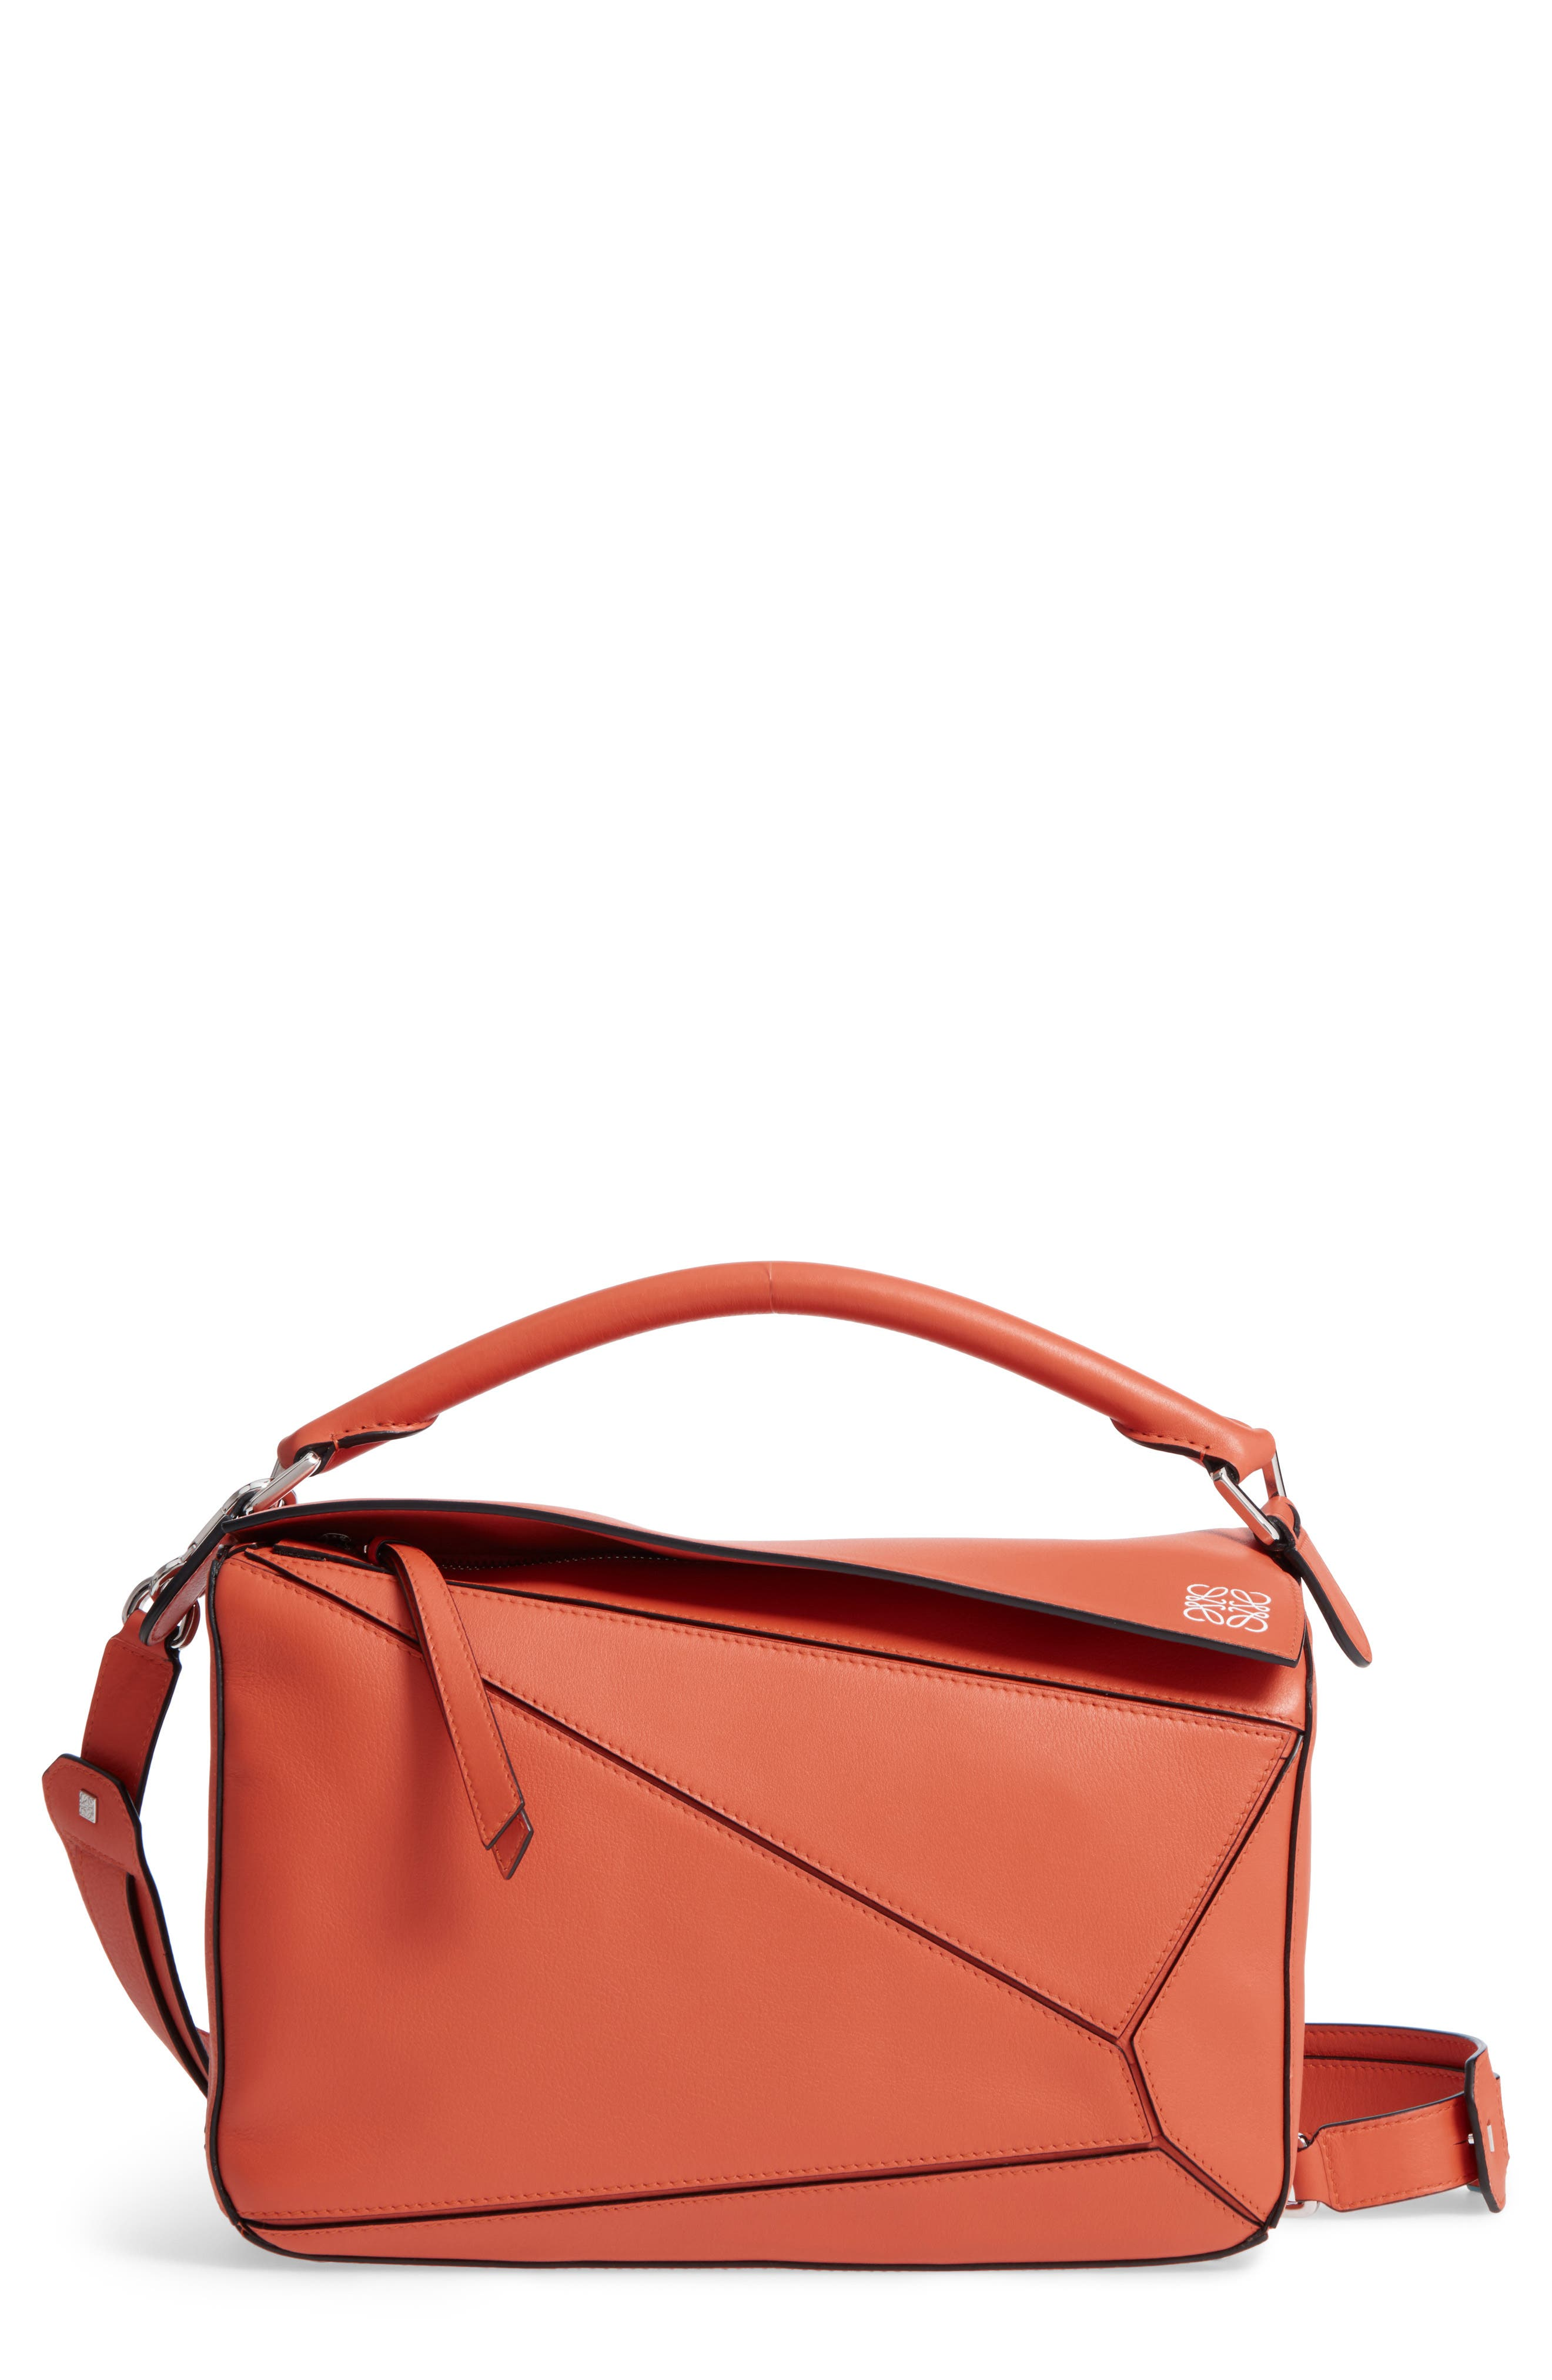 'Small Puzzle' Calfskin Leather Bag,                             Main thumbnail 8, color,